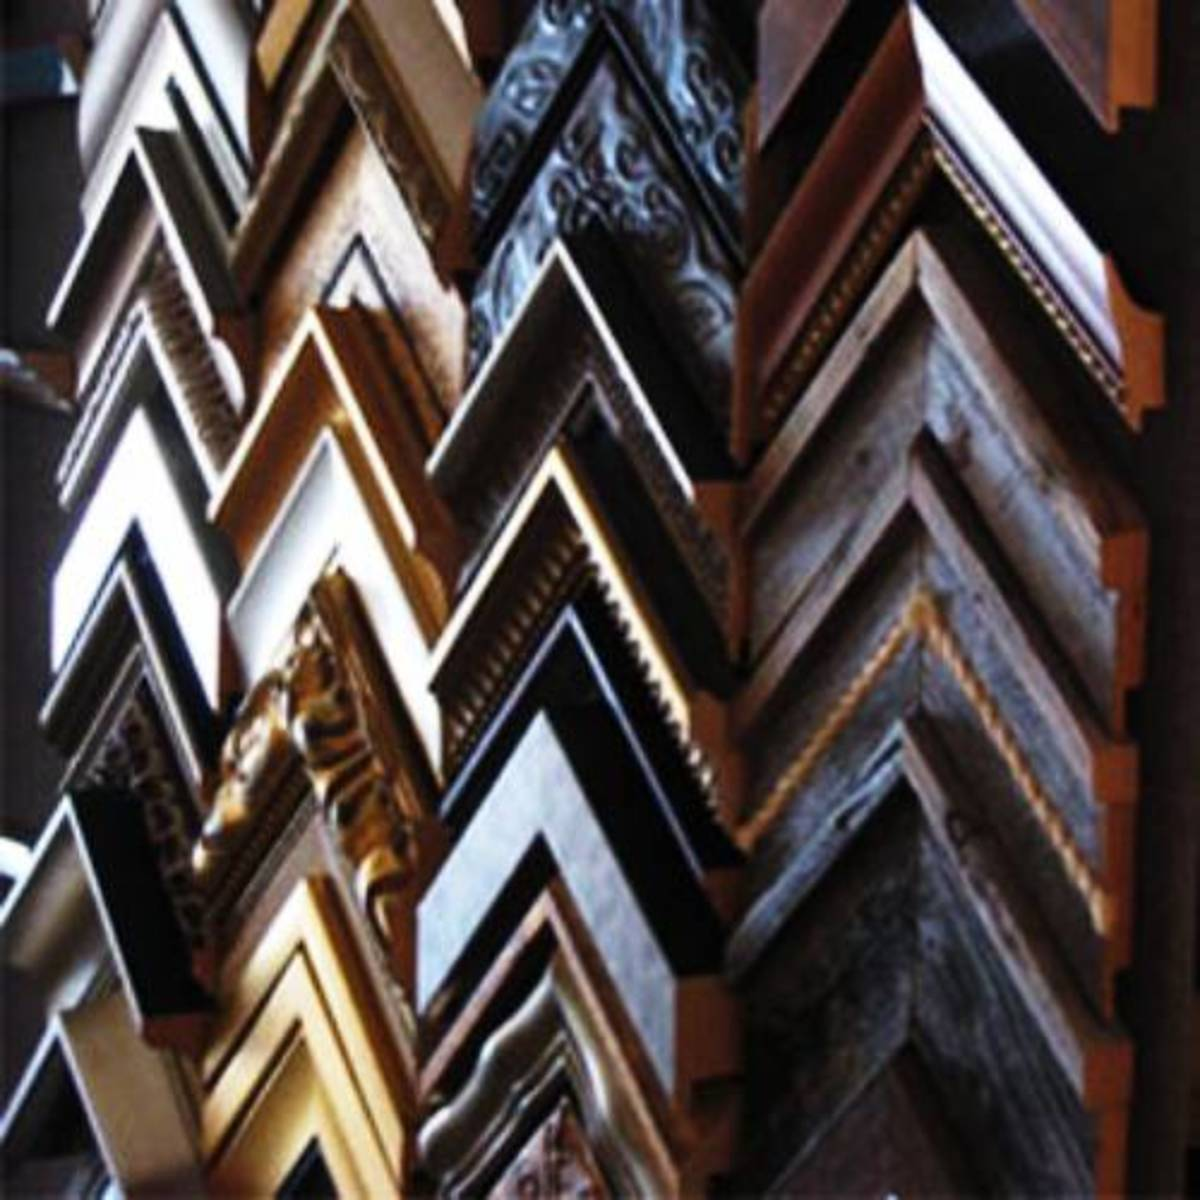 You can choose from wood, plaster, metal or polystyerene.